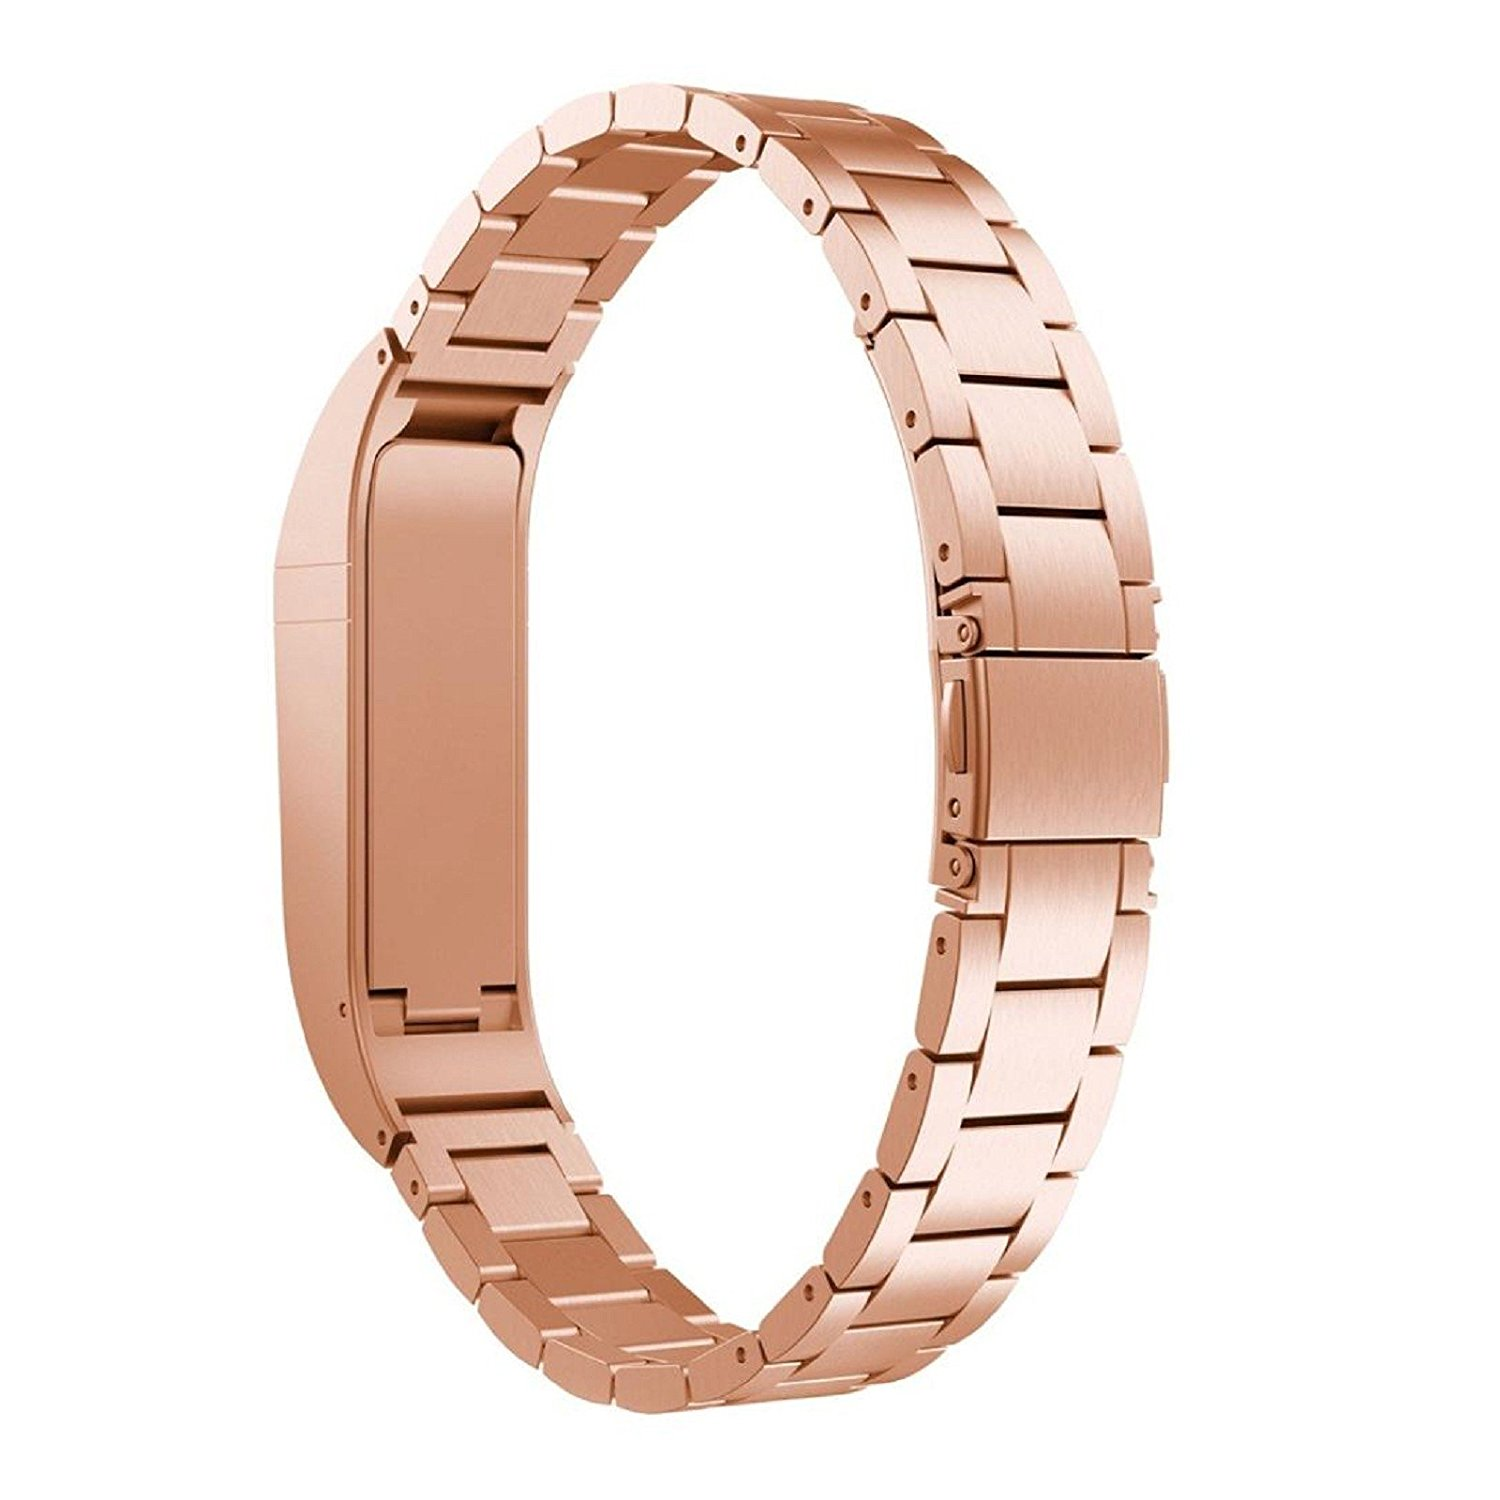 Owill Durable Stainless Steel Strap Wrist Band Replacement Bracelet For Fitbit Flex, Length:235MM (Rose Gold)